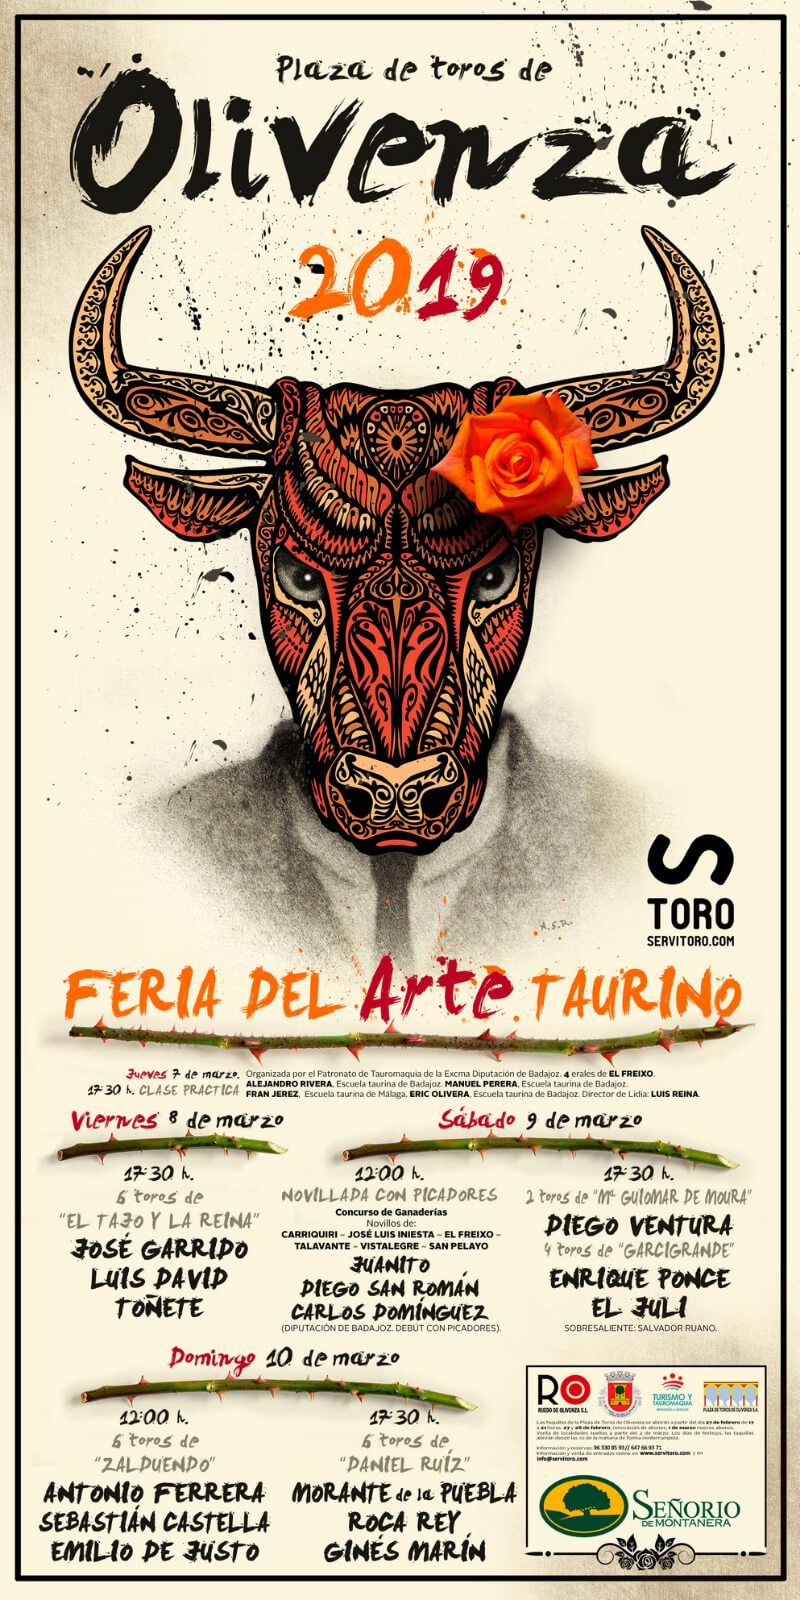 Olivenza Bullfighting